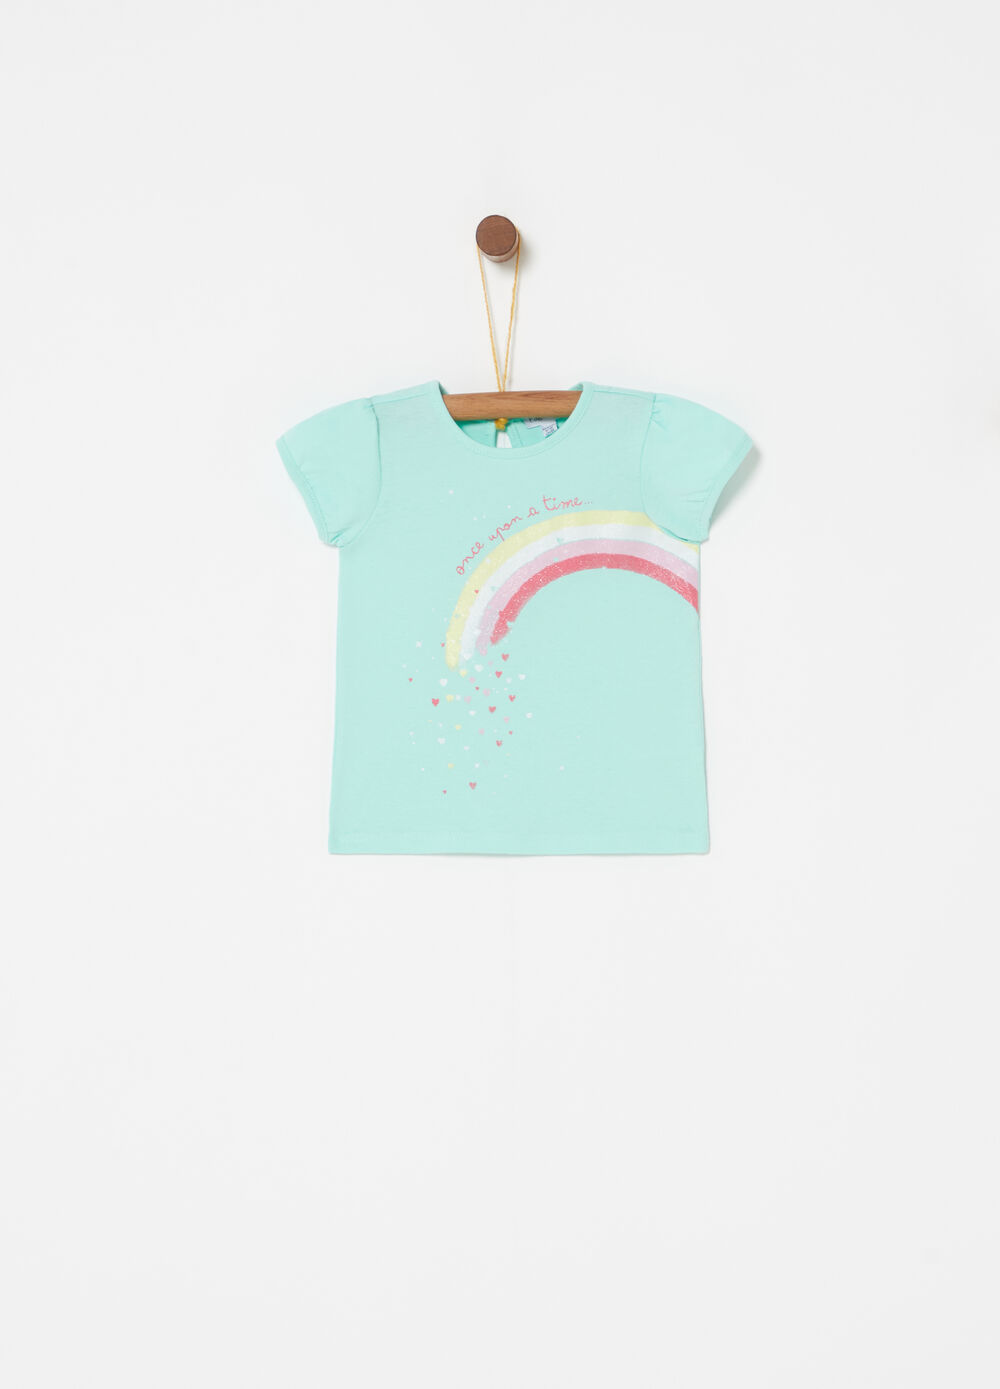 T-shirt in cotone stampa glitter arcobaleno